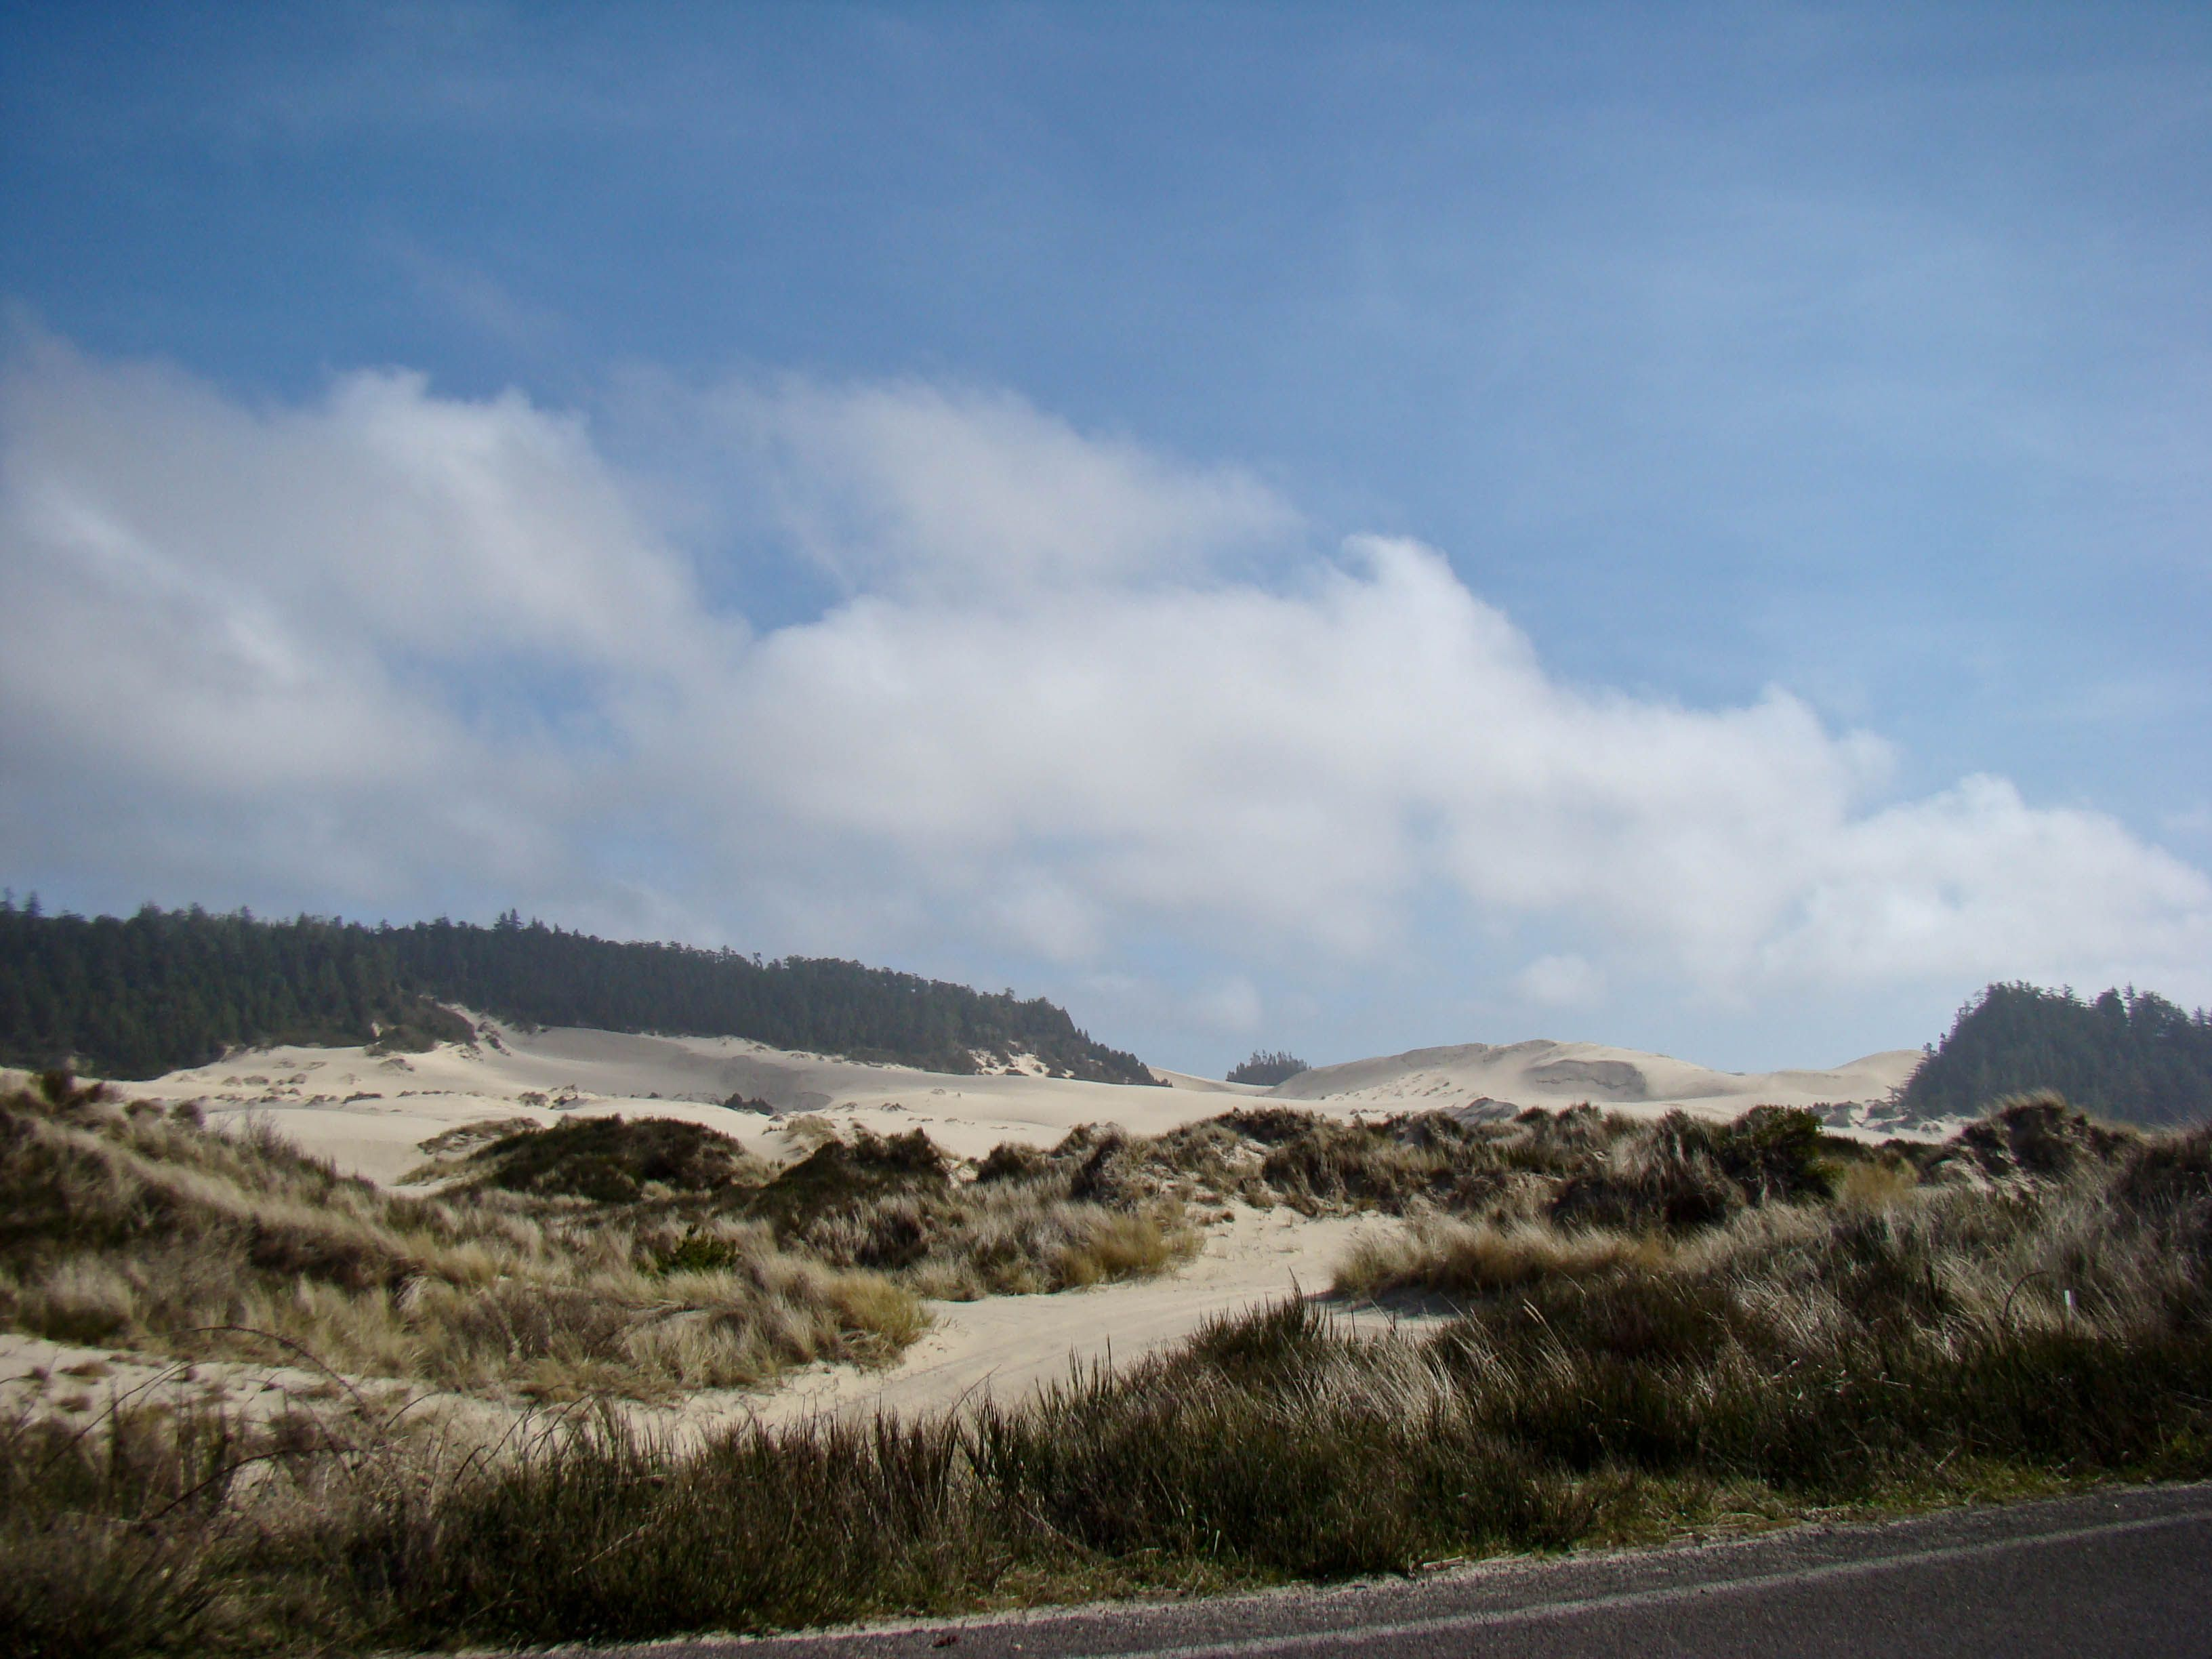 Oregon Dunes National Recreation Area - March 8th 2012